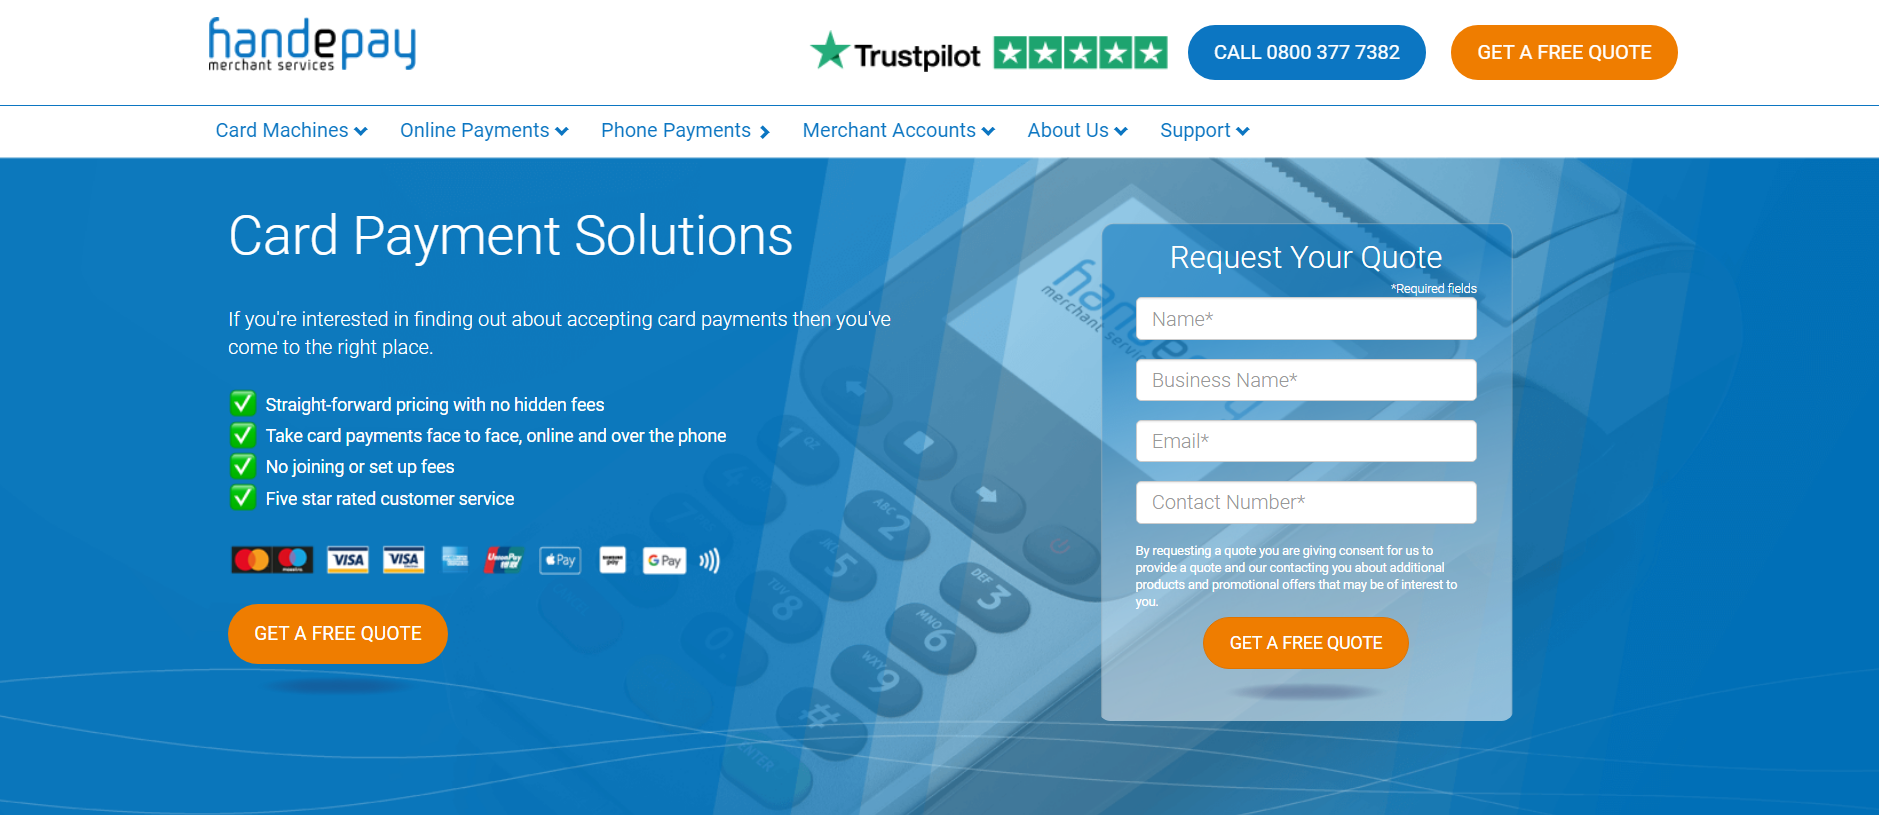 Card Machine Providers For Small Businesses 20